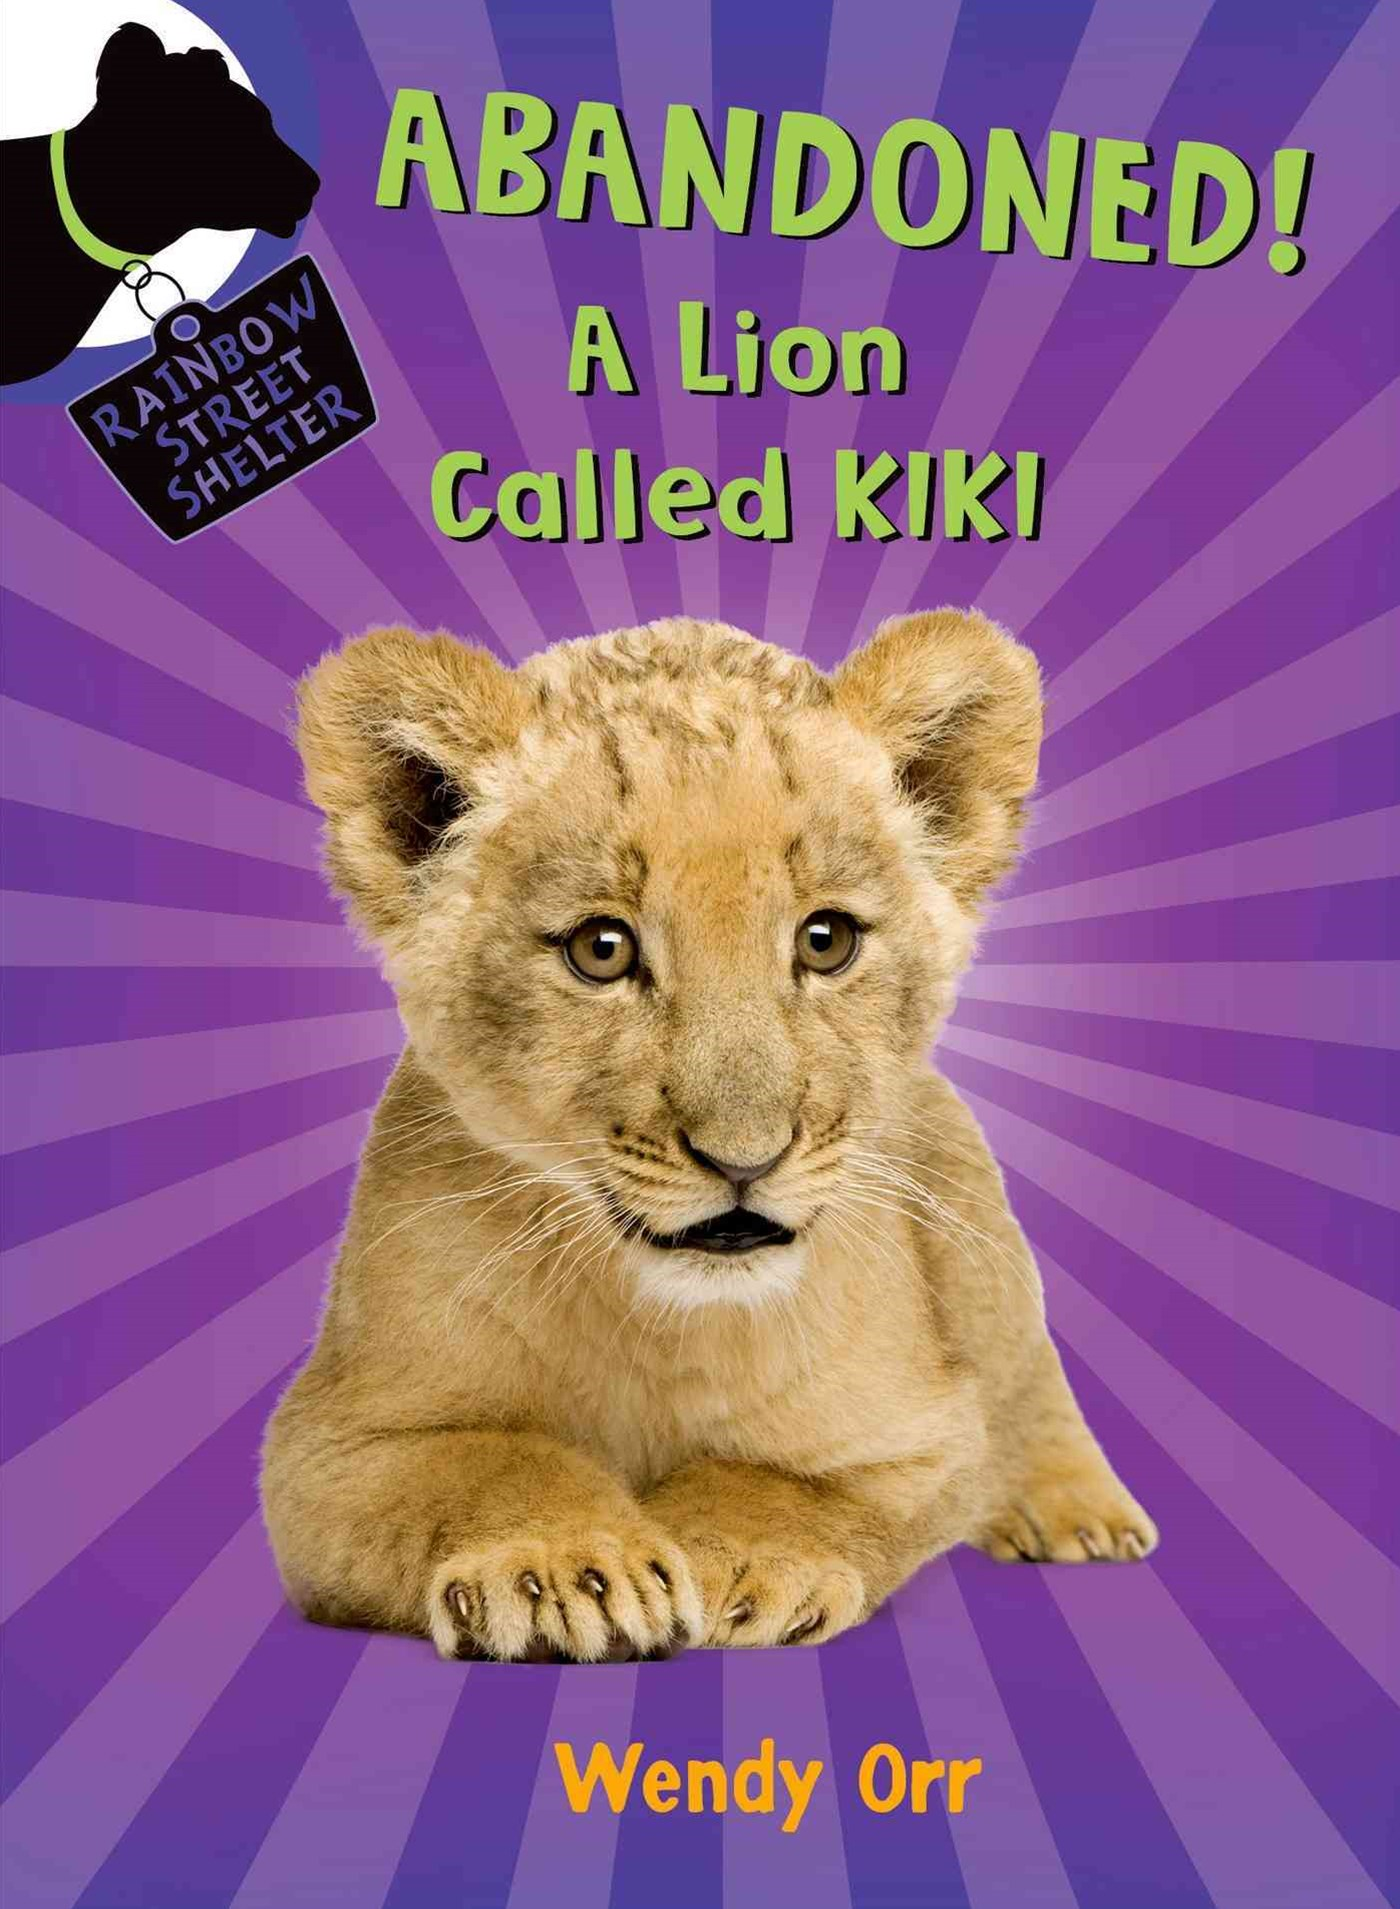 Abandoned! - A Lion Called Kiki